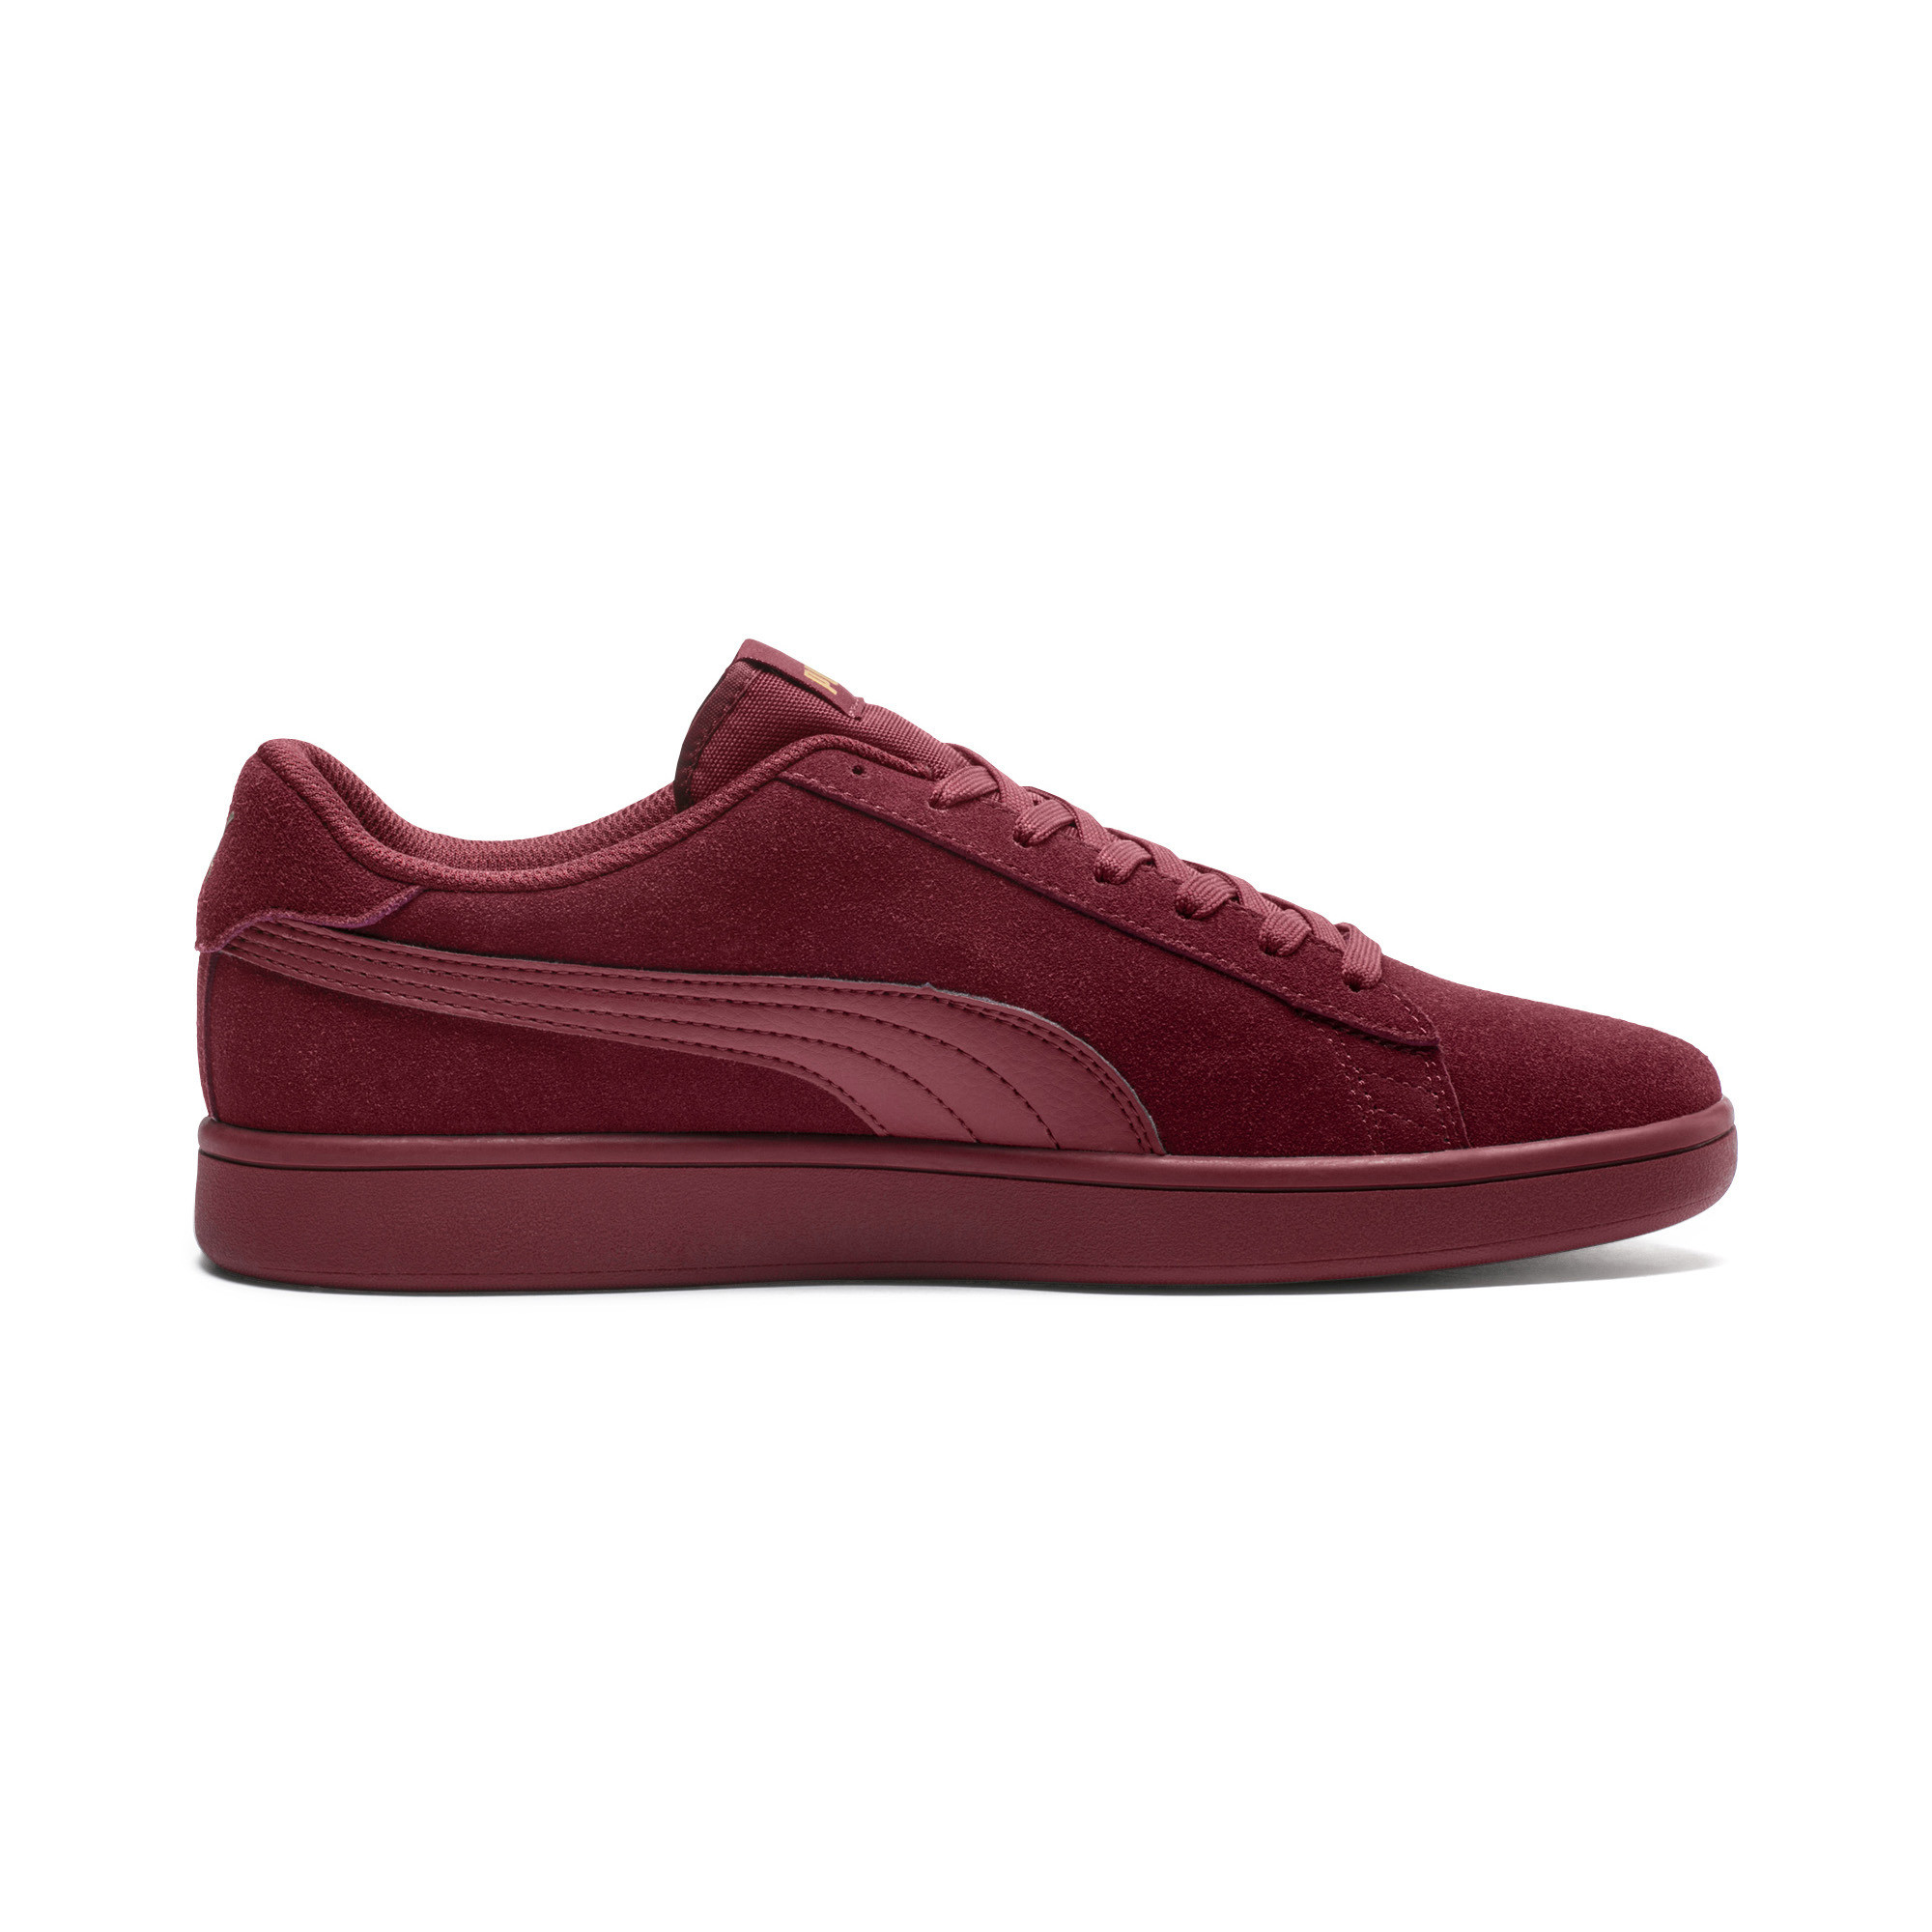 PUMA-PUMA-Smash-v2-Men-039-s-Sneakers-Men-Shoe-Basics thumbnail 22